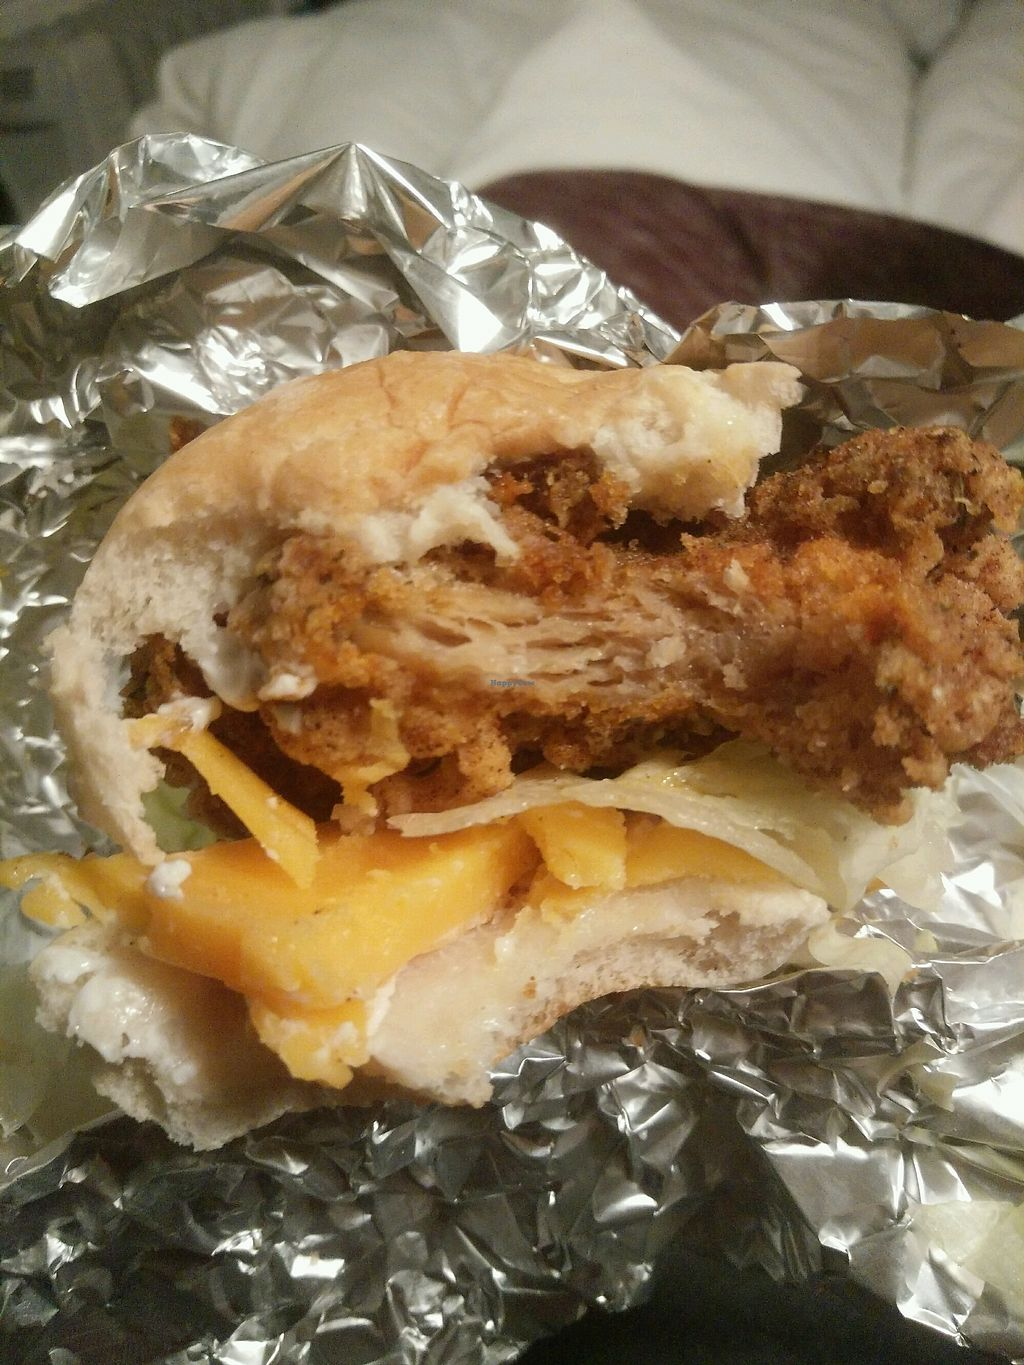 """Photo of Junk it Up - Vegan Fast Food  by <a href=""""/members/profile/DominikaA"""">DominikaA</a> <br/>tasty cheese sub <br/> January 3, 2018  - <a href='/contact/abuse/image/107610/342620'>Report</a>"""